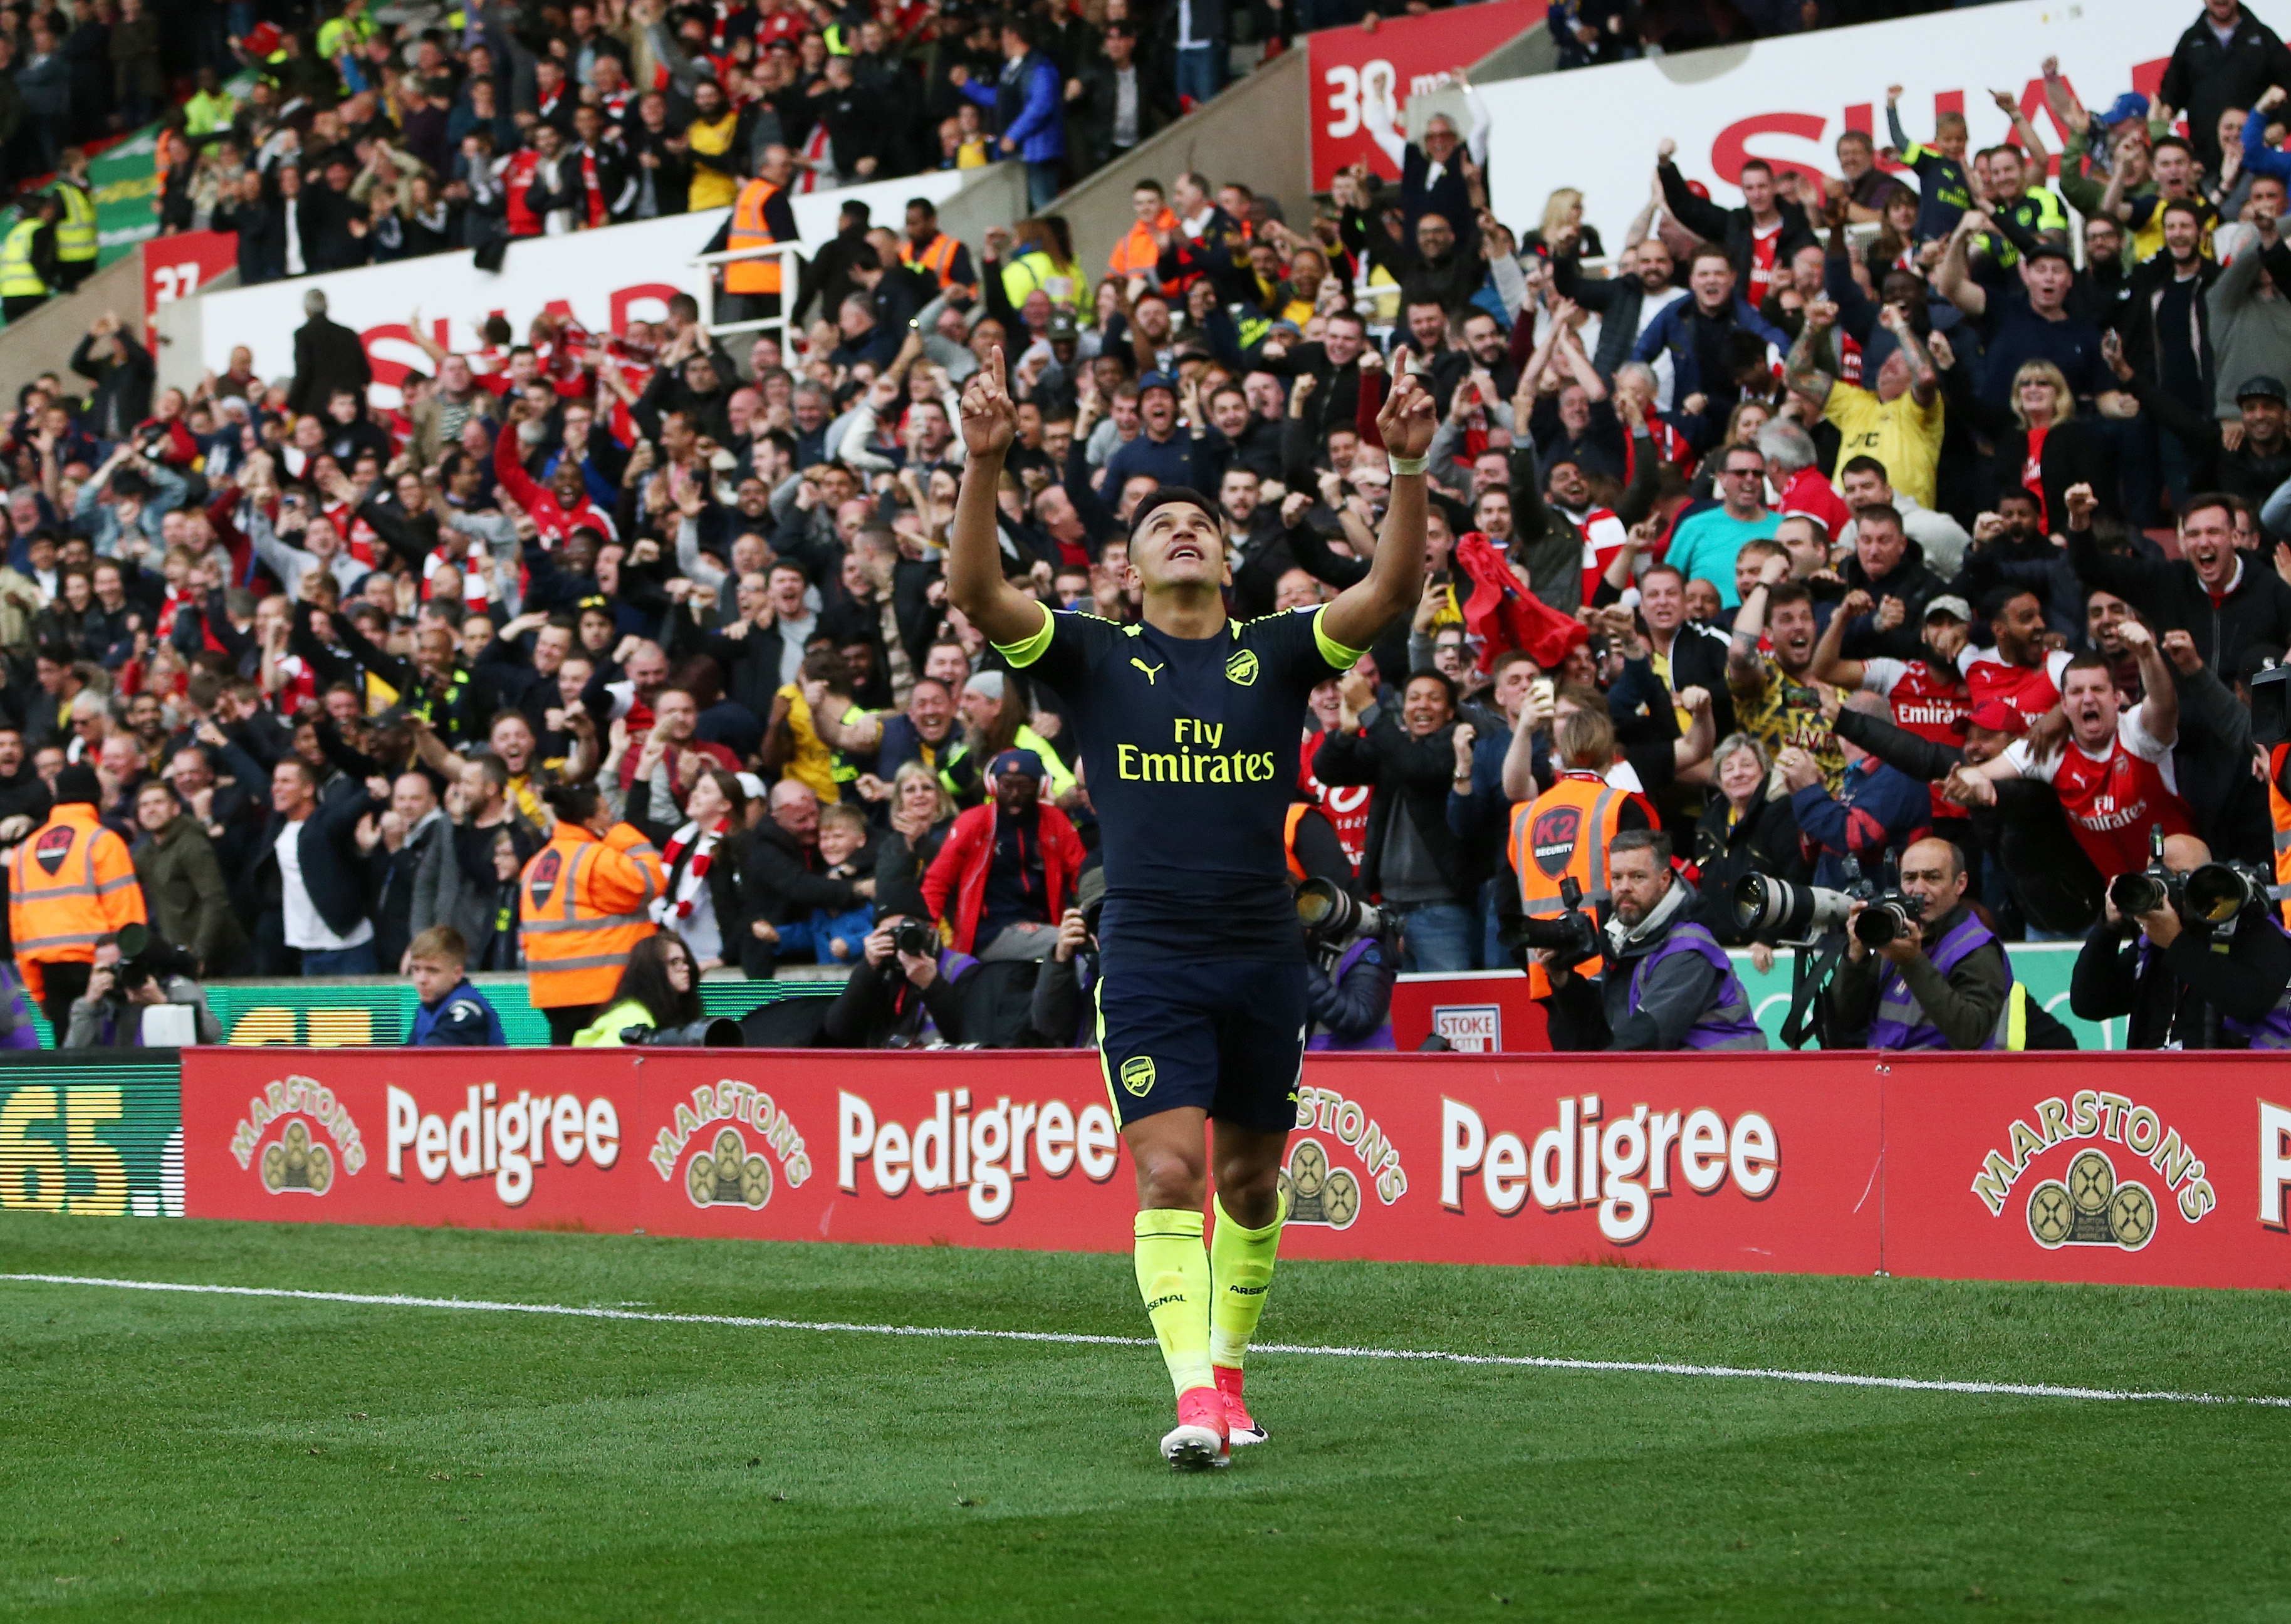 Stoke 1-4 Arsenal player ratings: Alexis Sanchez stars to keep top four hopes alive